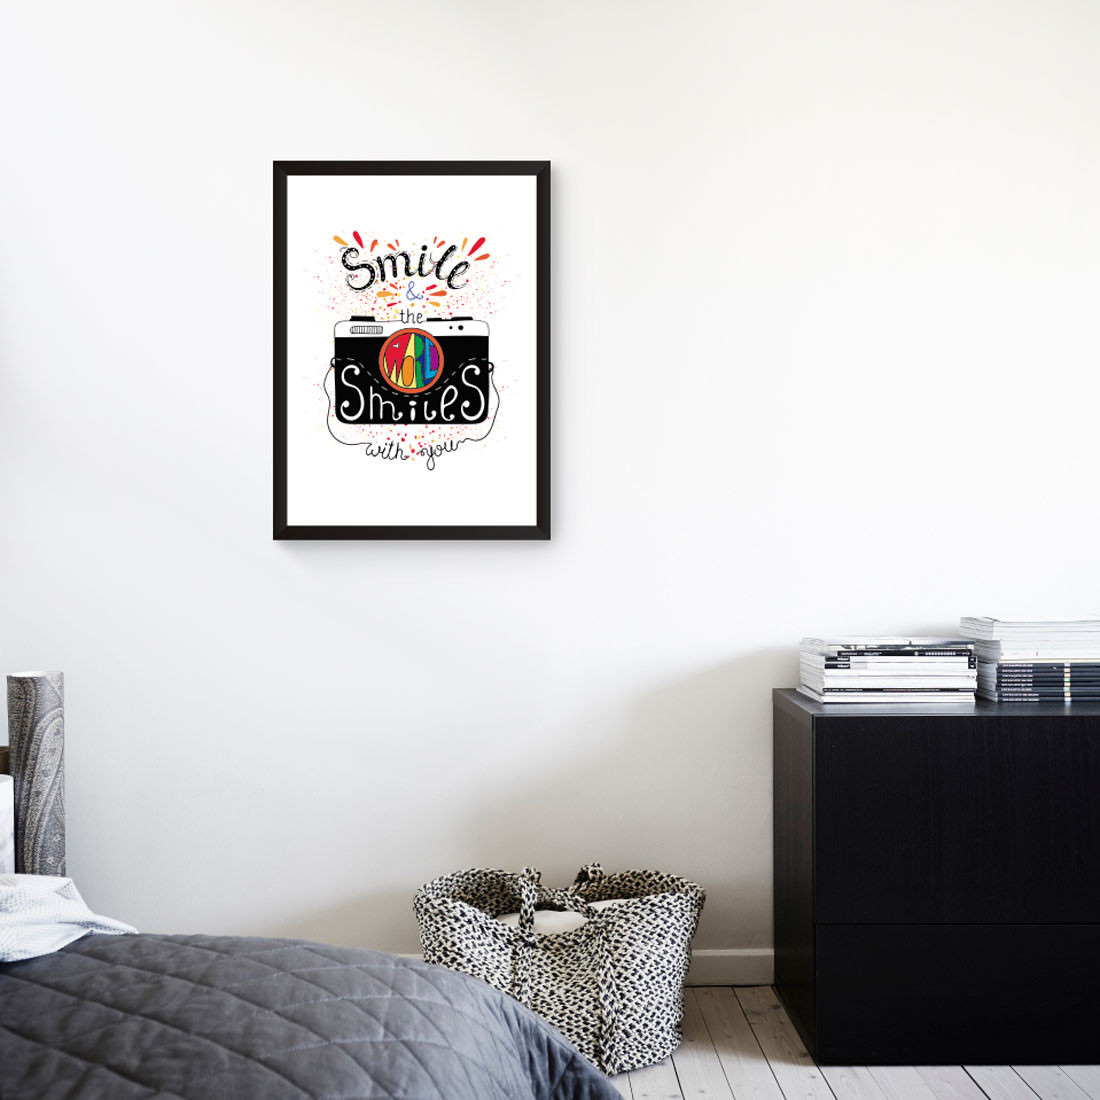 Quadro Decorativo Smile & The World Smiles With You Simulado Fundo Branco